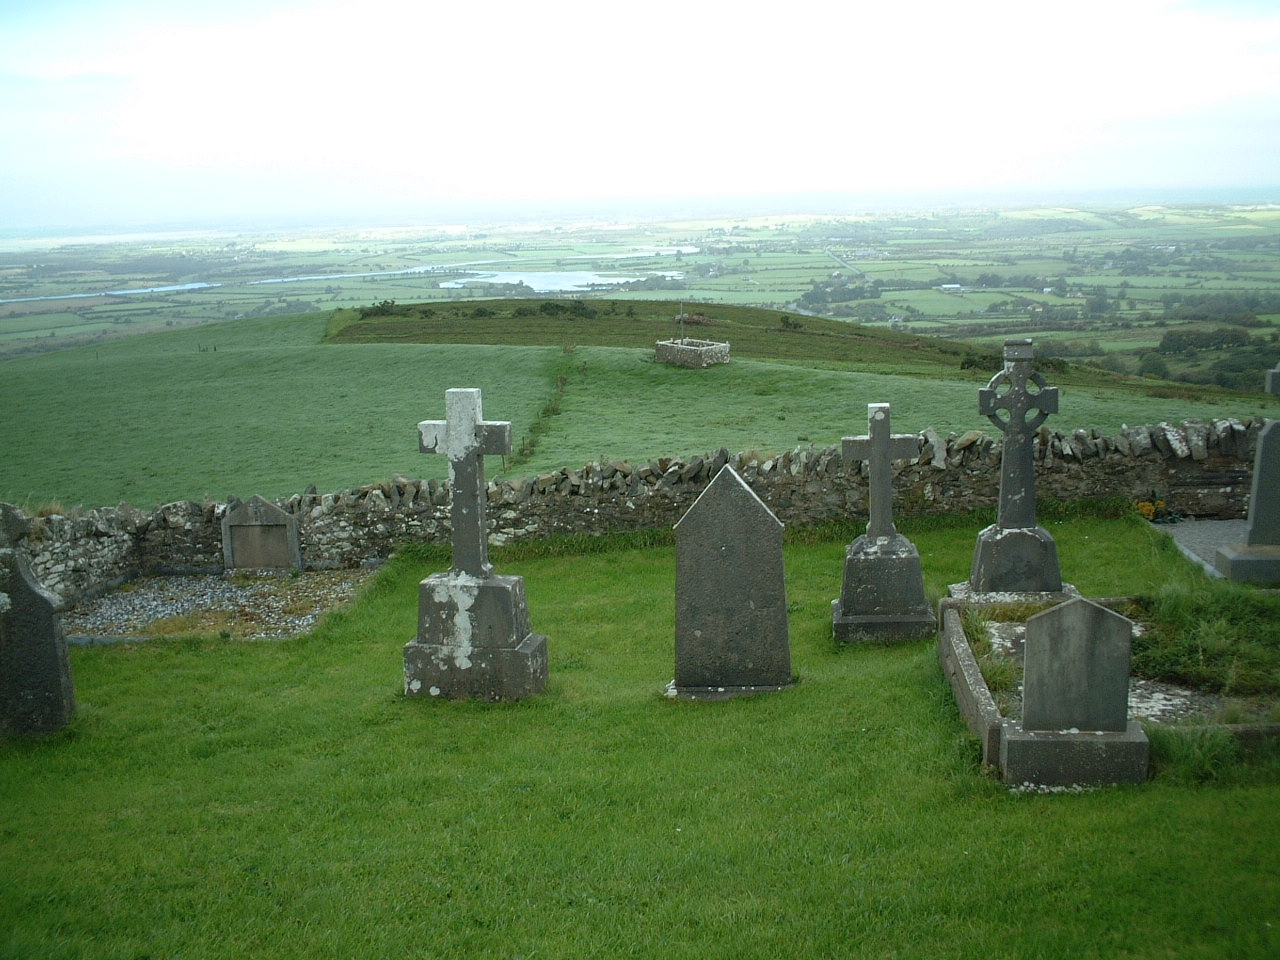 Misty green fields and freestone fences with gravestones in the foreground and sweeping pastures in the backround with sea in the distance.